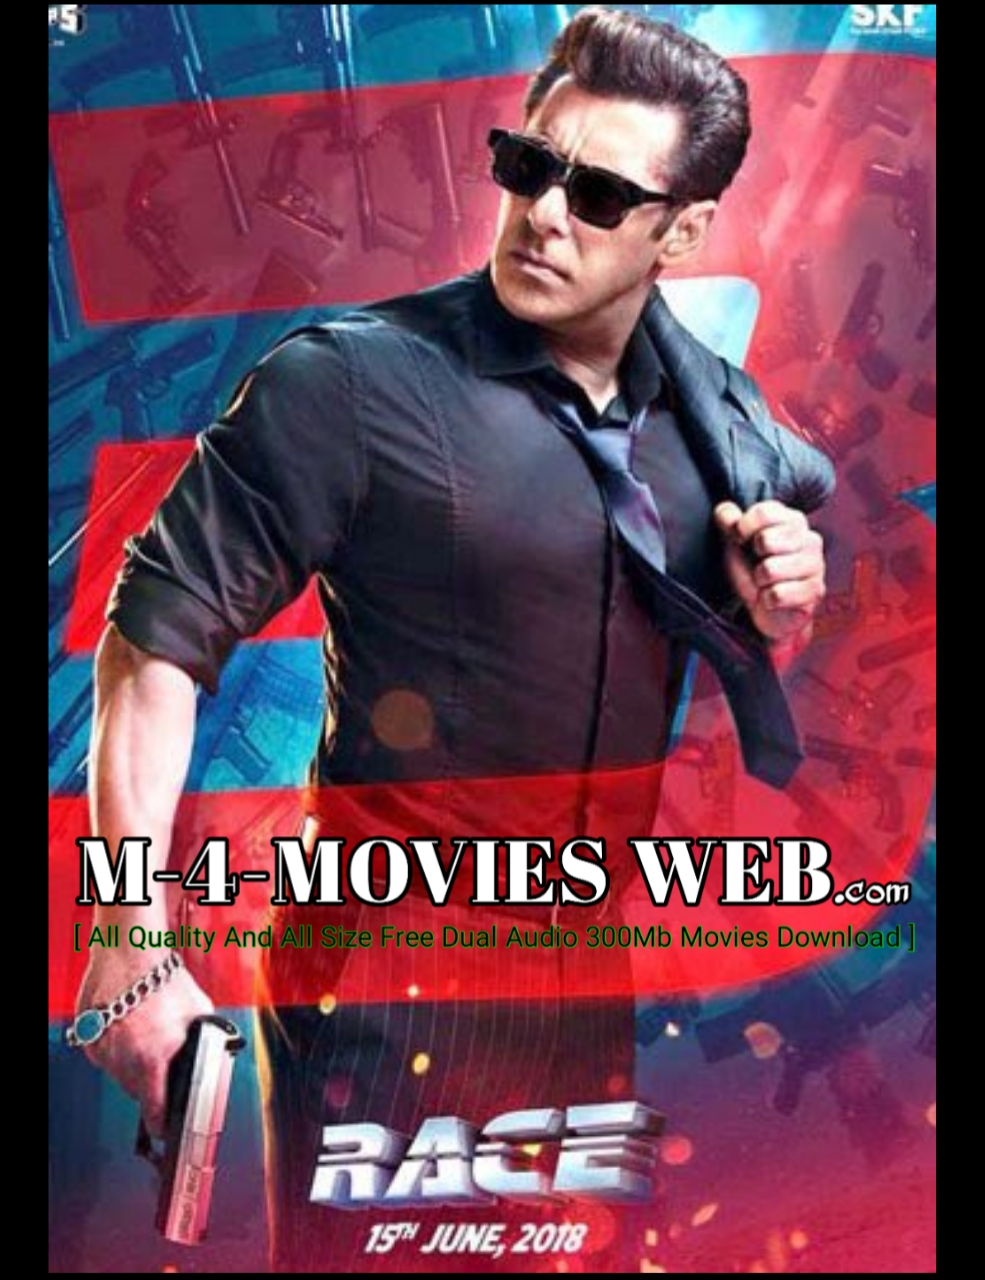 race 3 movie download hd